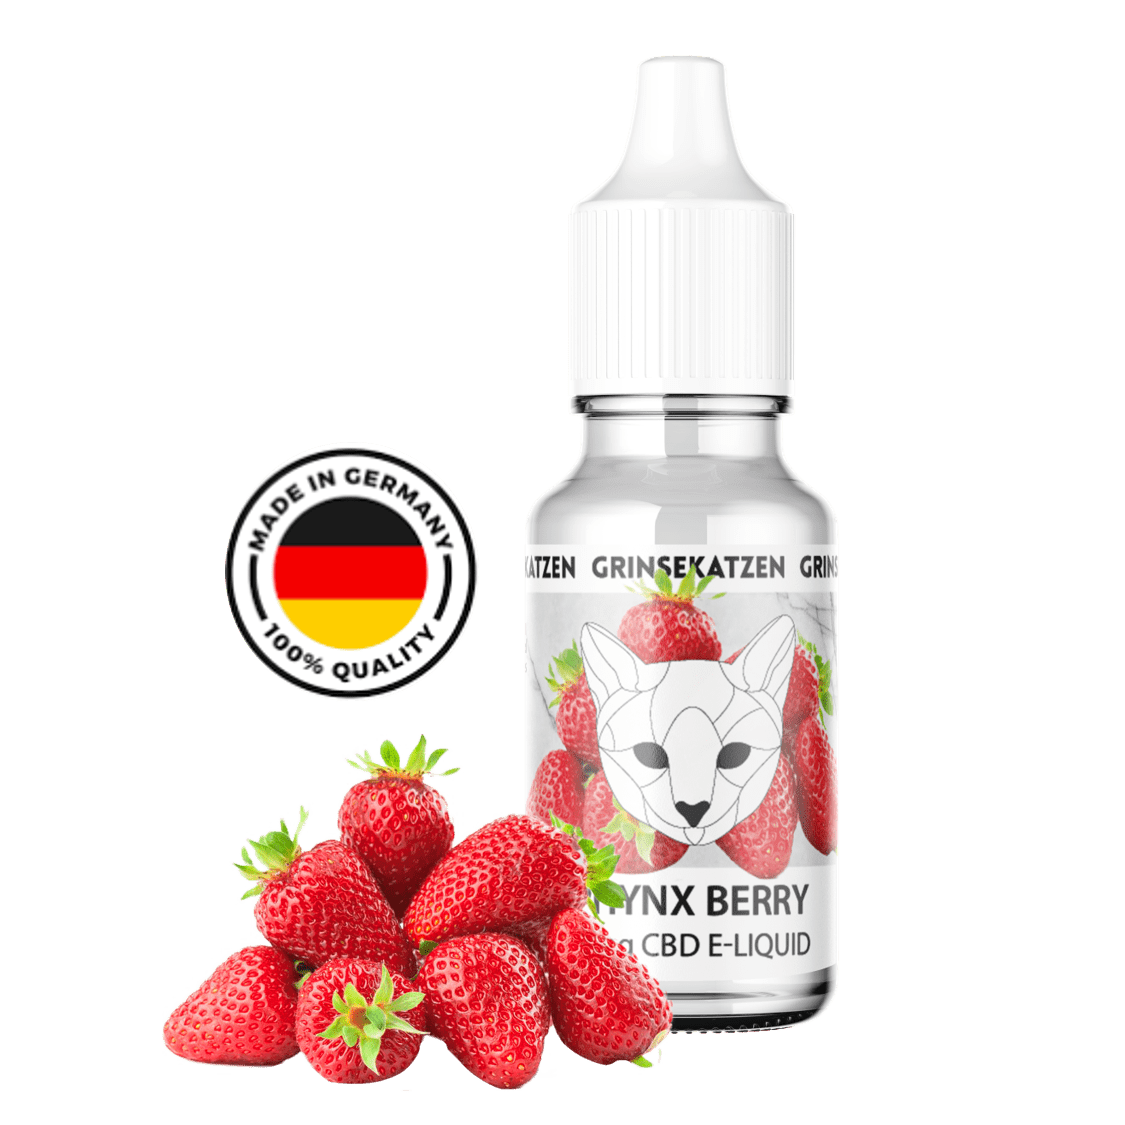 Erdbeer CBD Liquid Sphynx Berry 10ml - 400 mg CBD